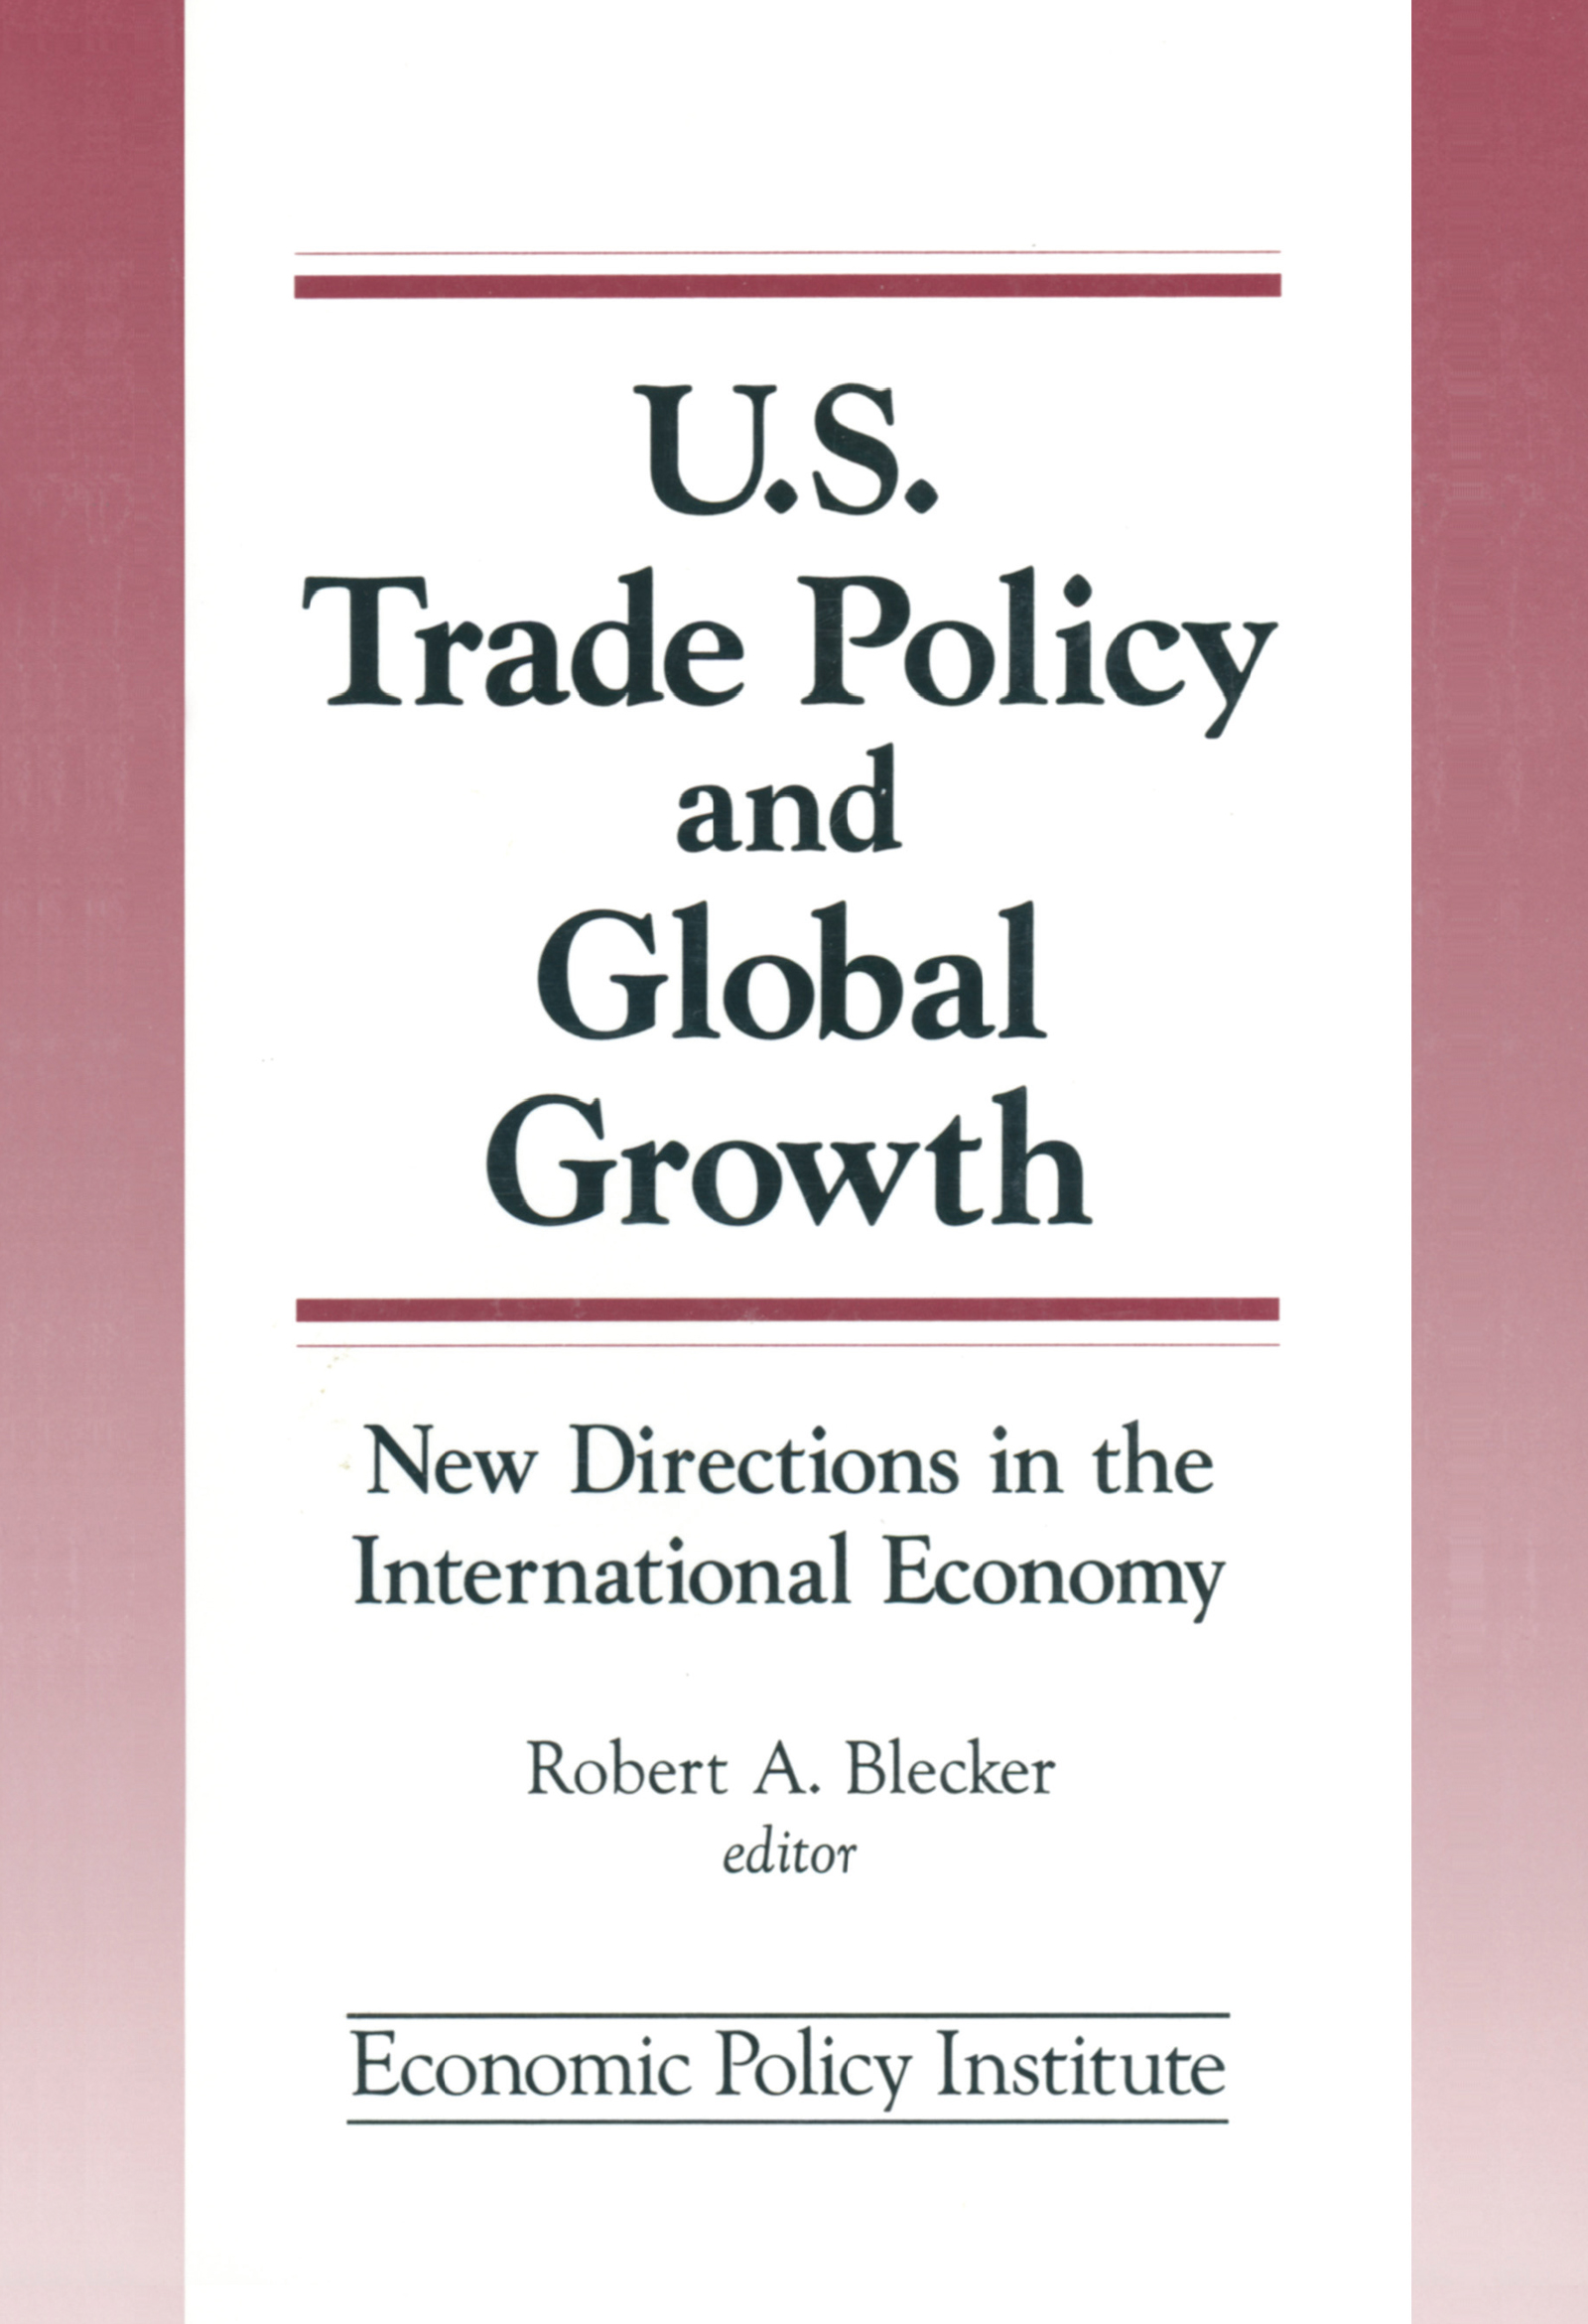 Trade Policy and Global Growth: New Directions in the International Economy